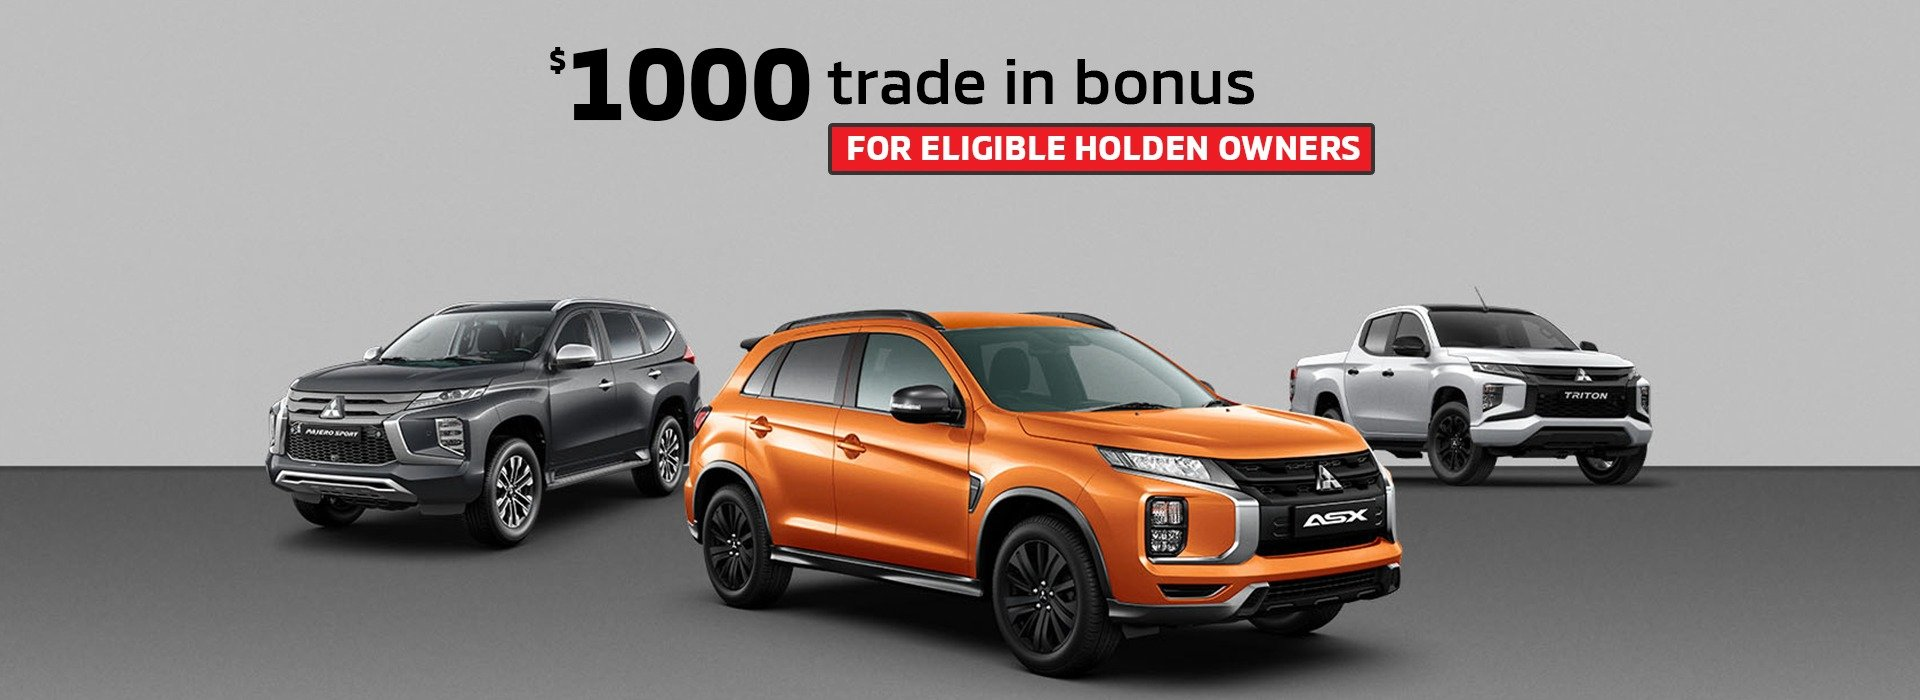 holden-owners-mitsubishi-incentive